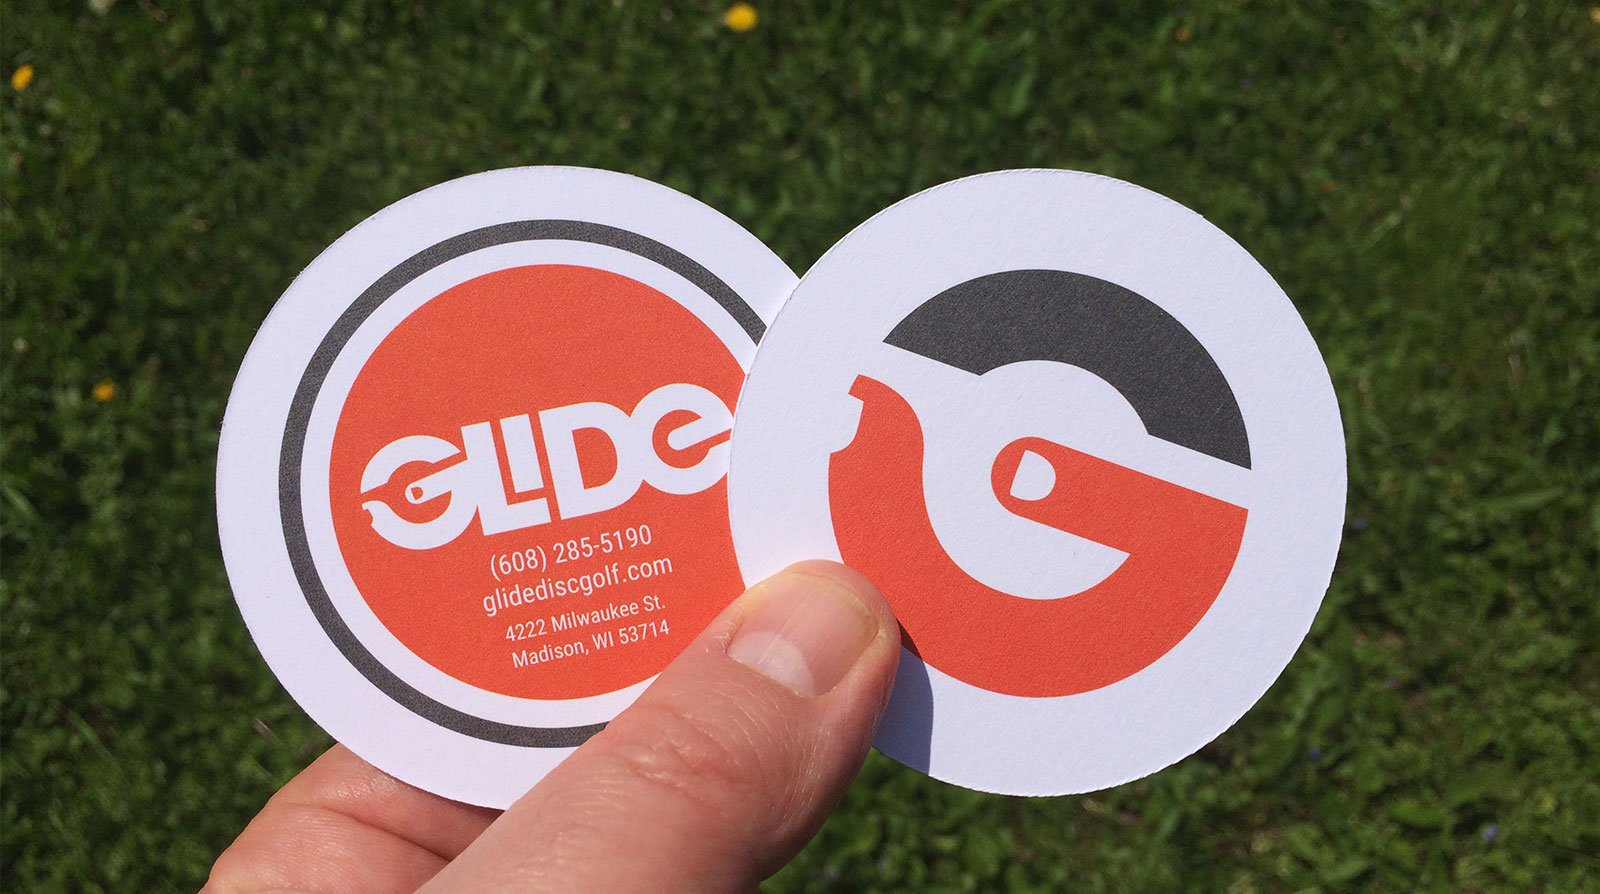 thick, circle business cards for Glide Disc Golf, designed by Phonographik Design Studio